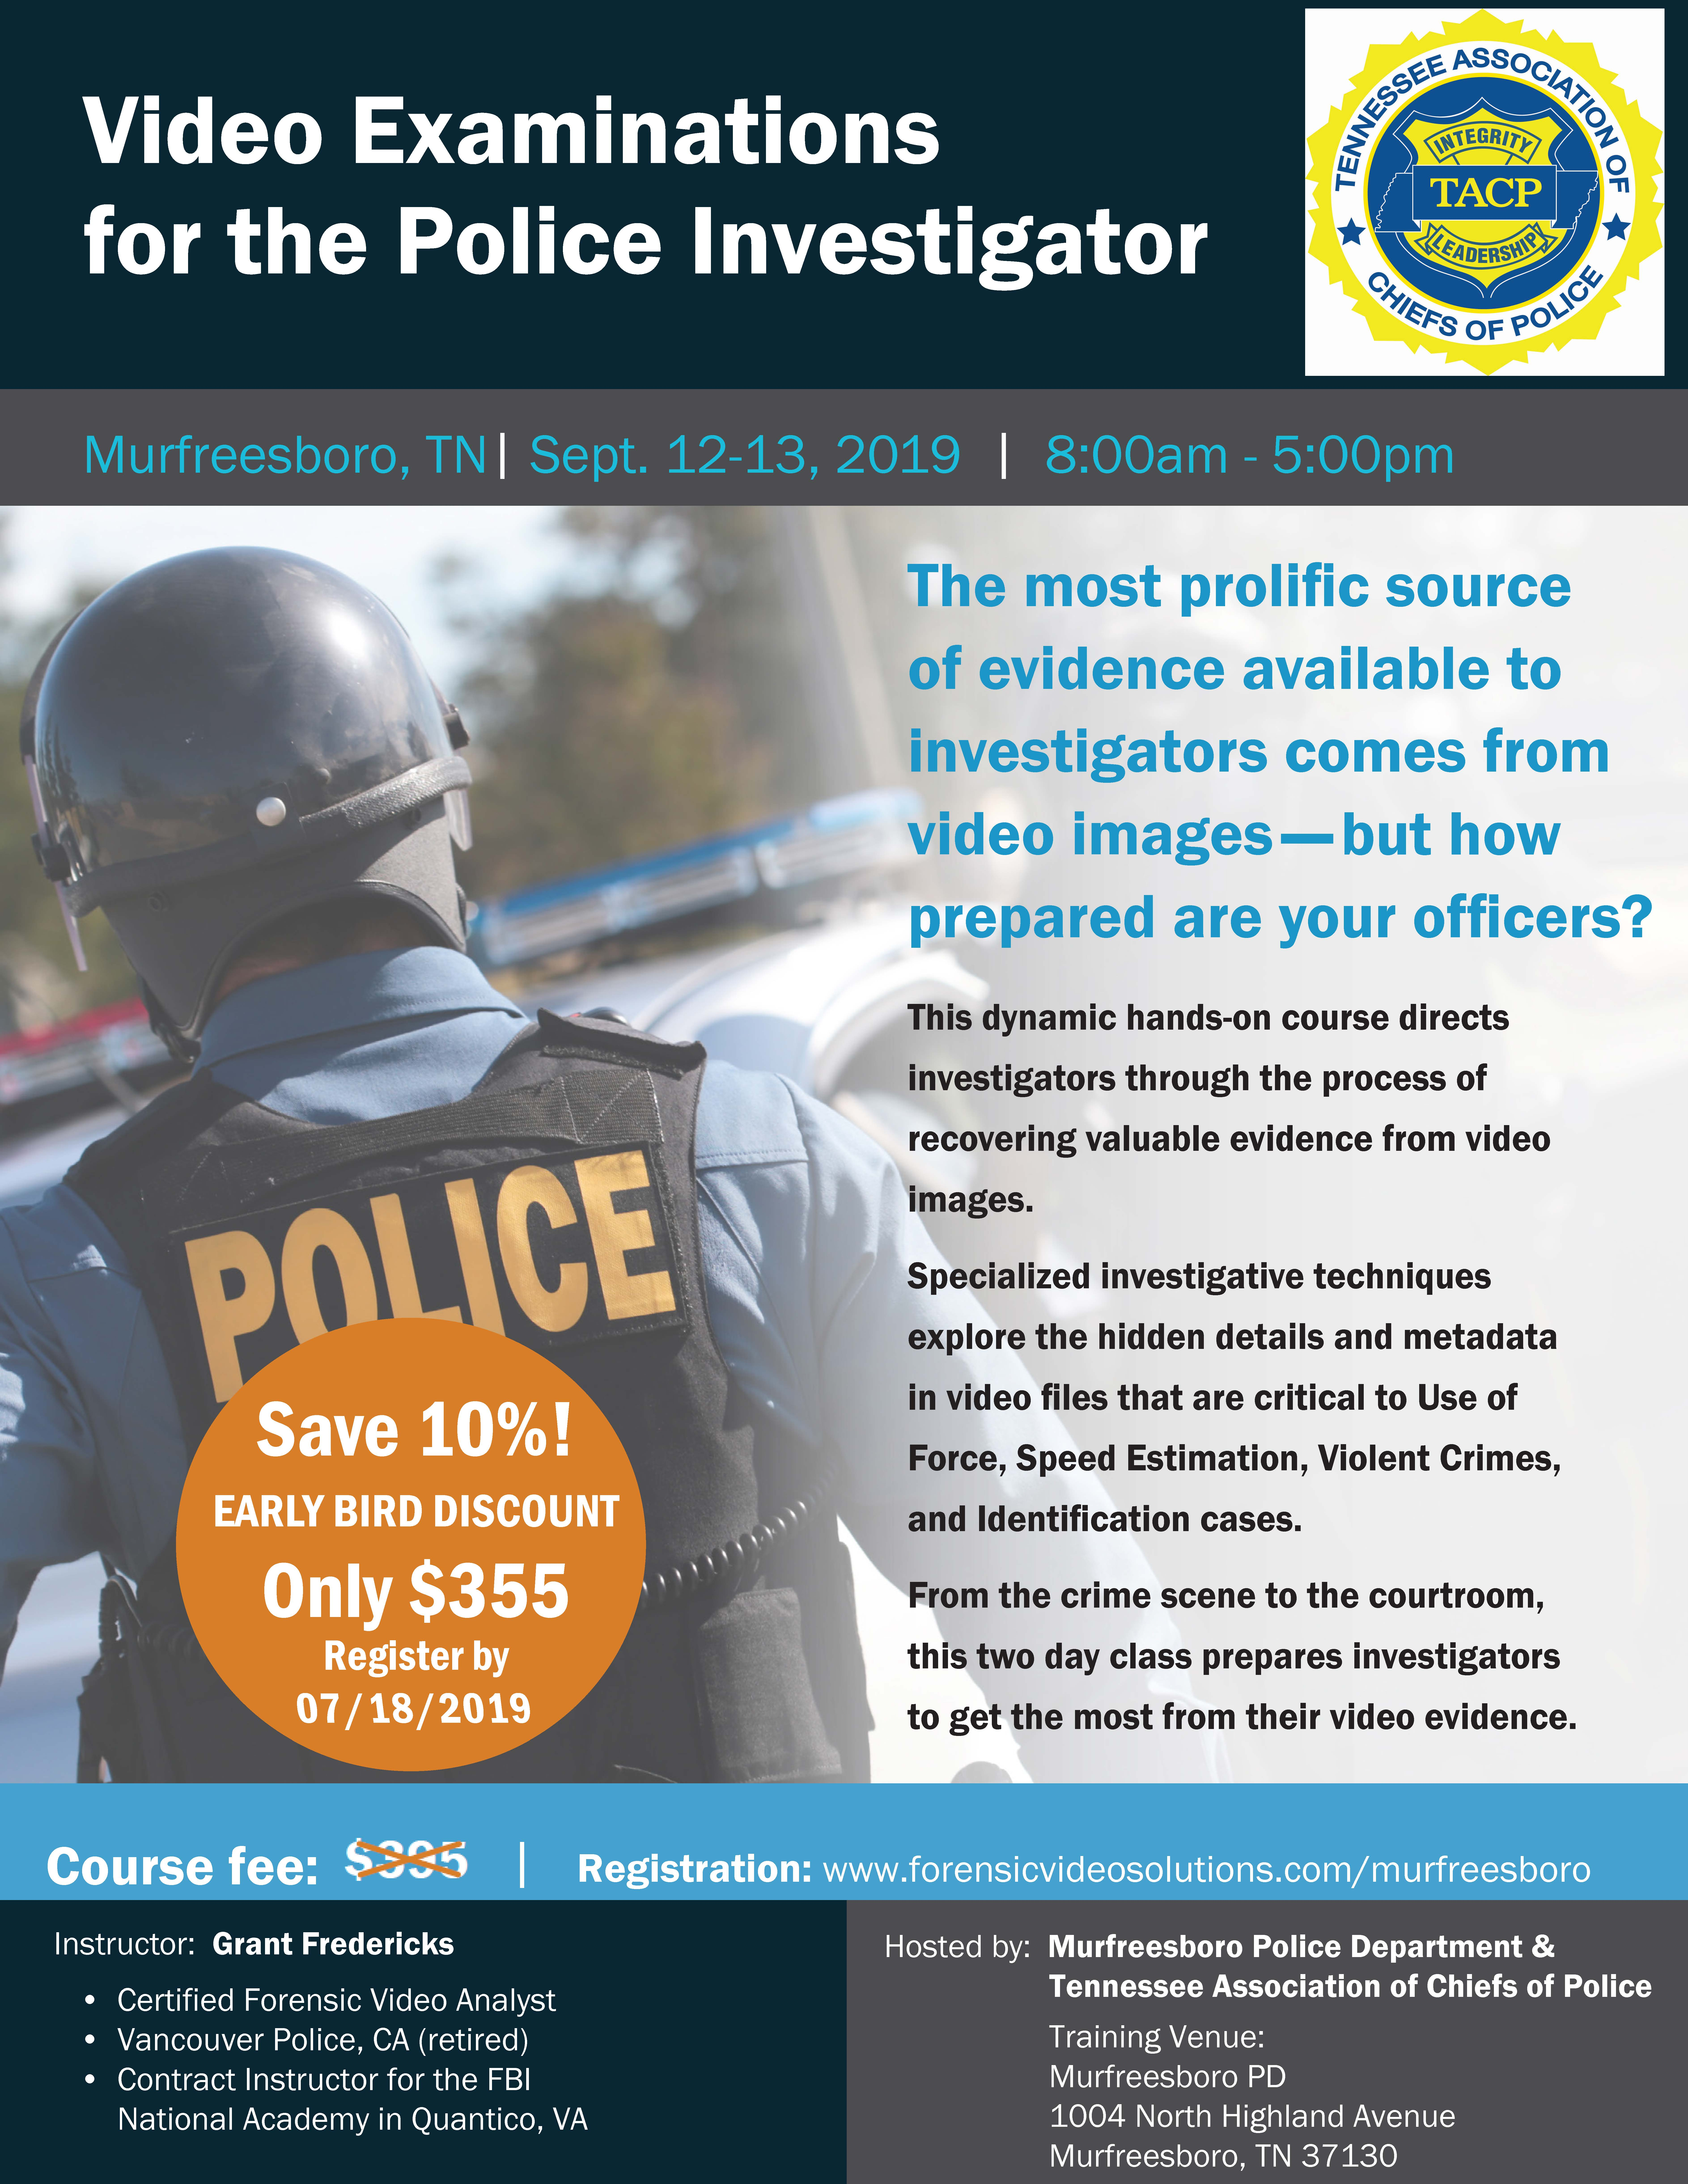 Registration - Forensic Video Solutions